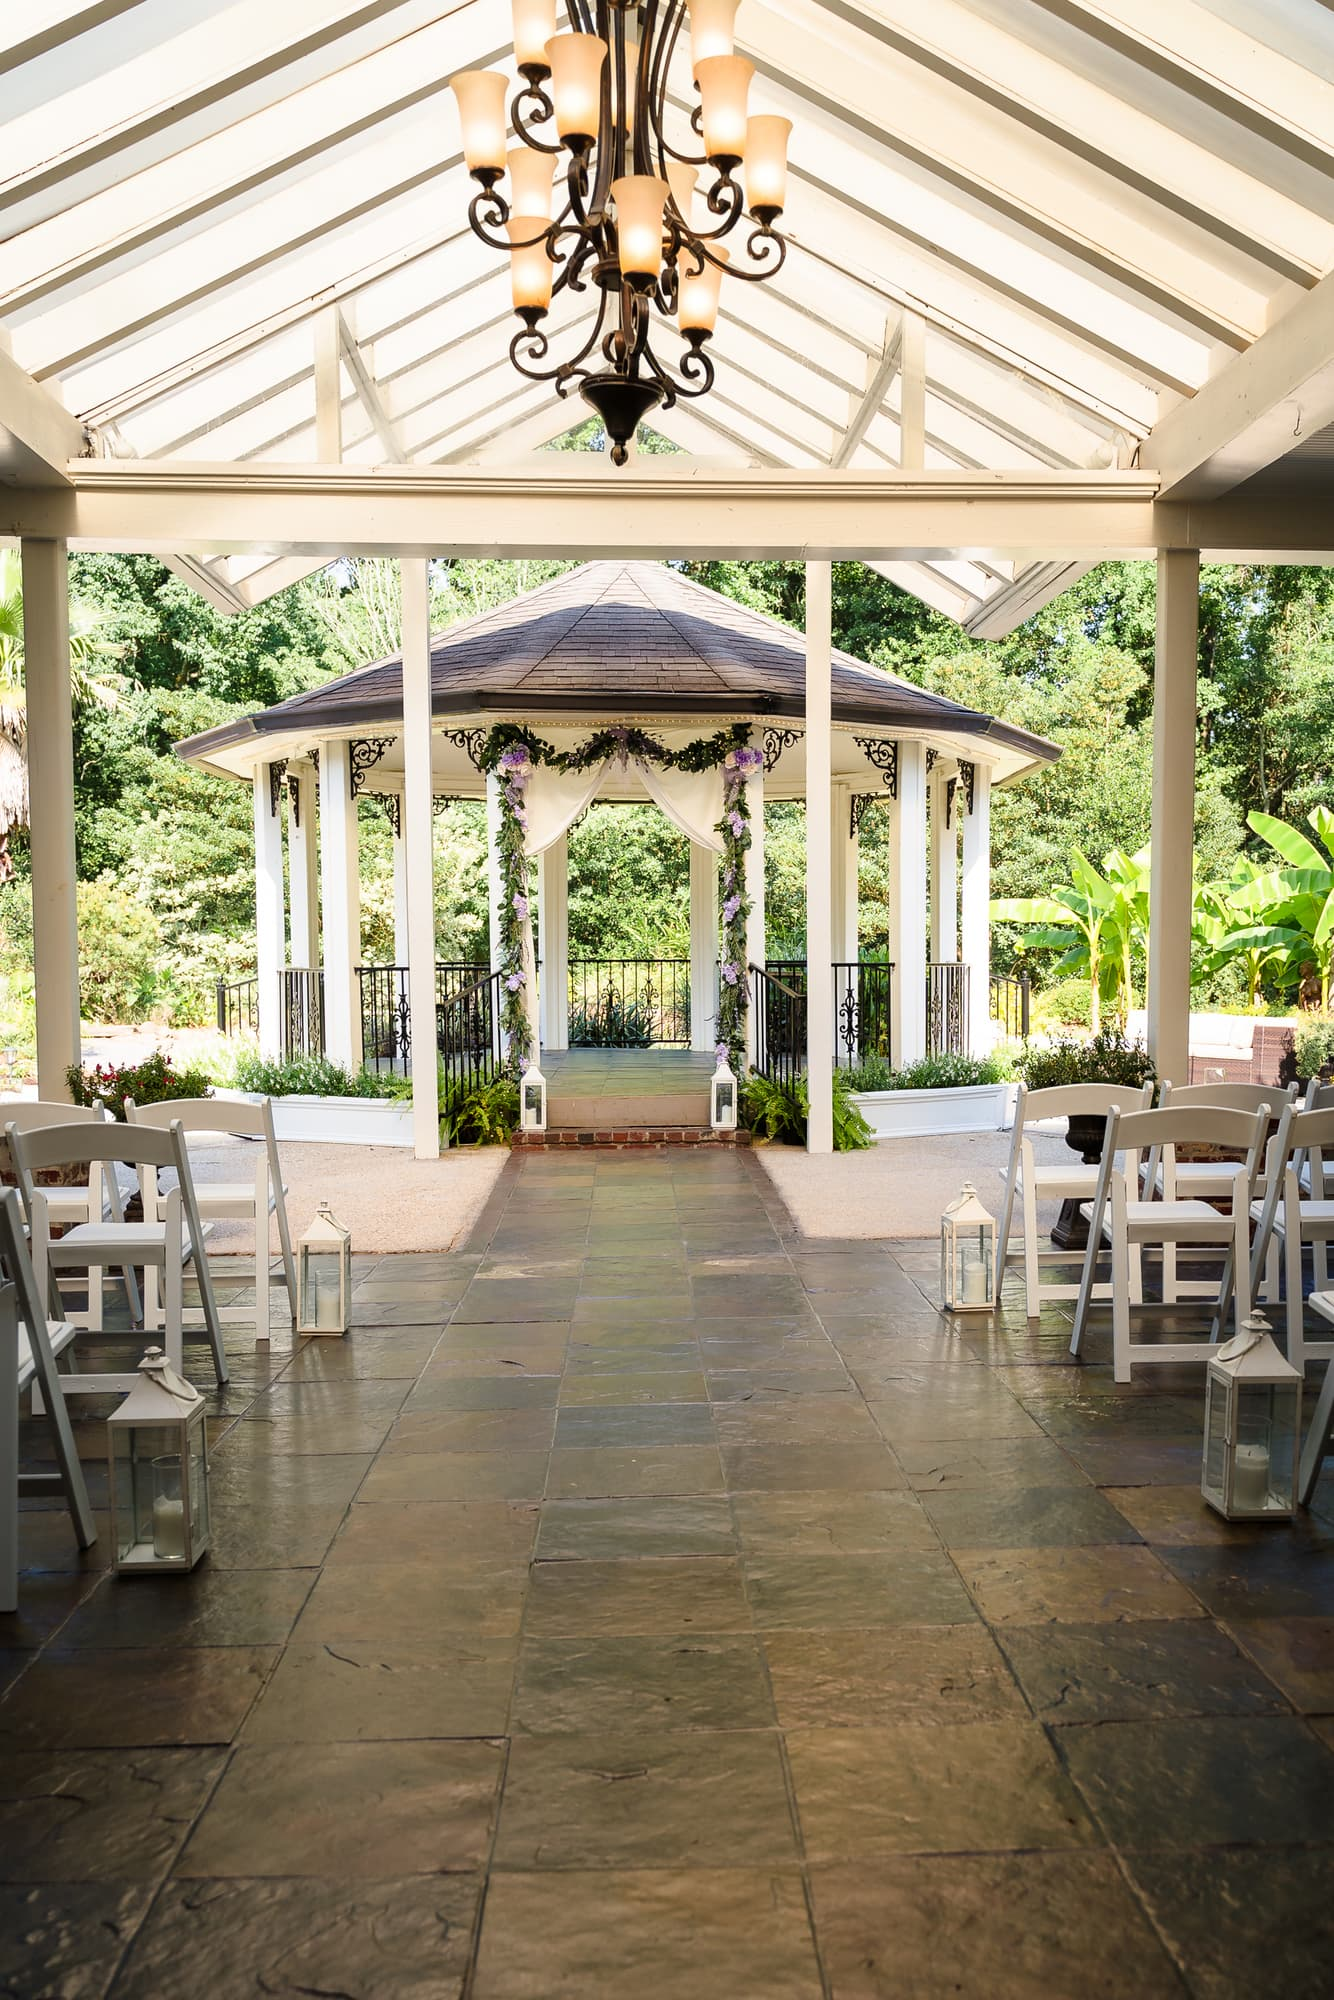 The Gatehouse Baton Rouge Wedding ceremony location